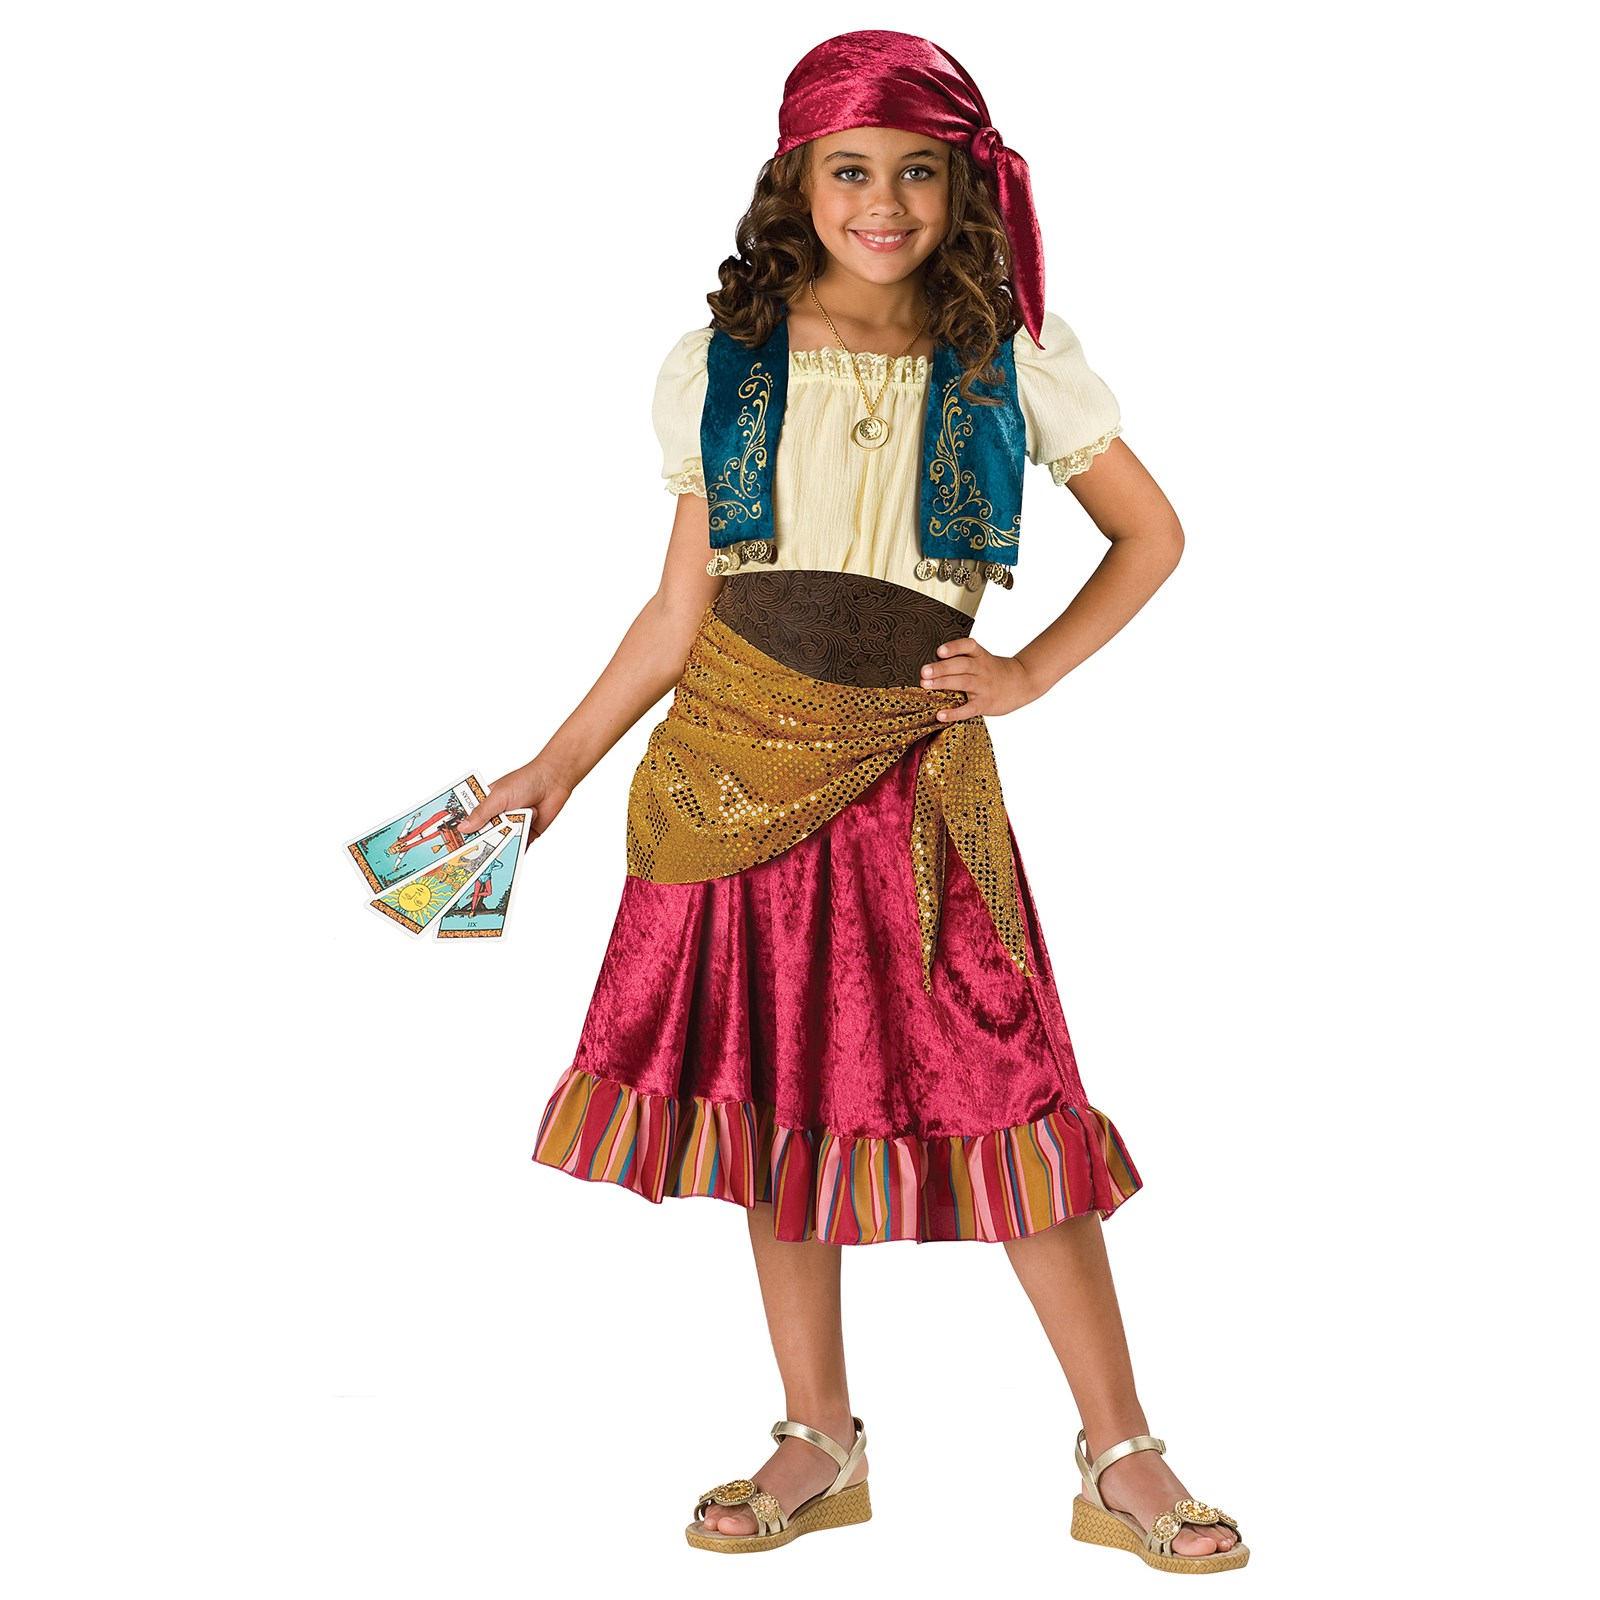 A gypsy girl named michelle 10